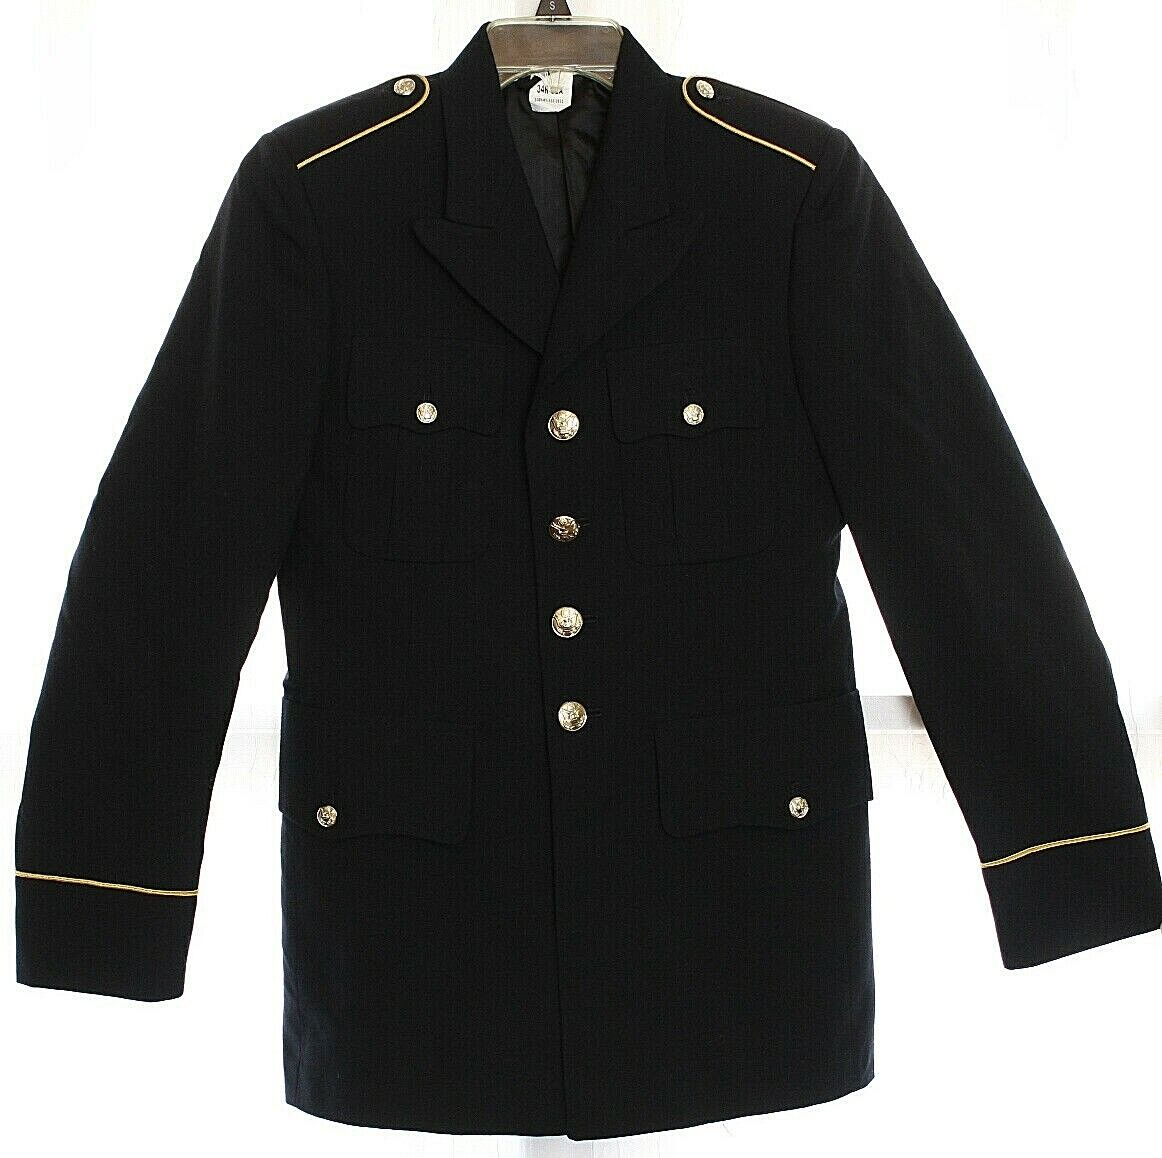 * Vintage Department of Defense Military Army Agent Uniform Jacket Small Black